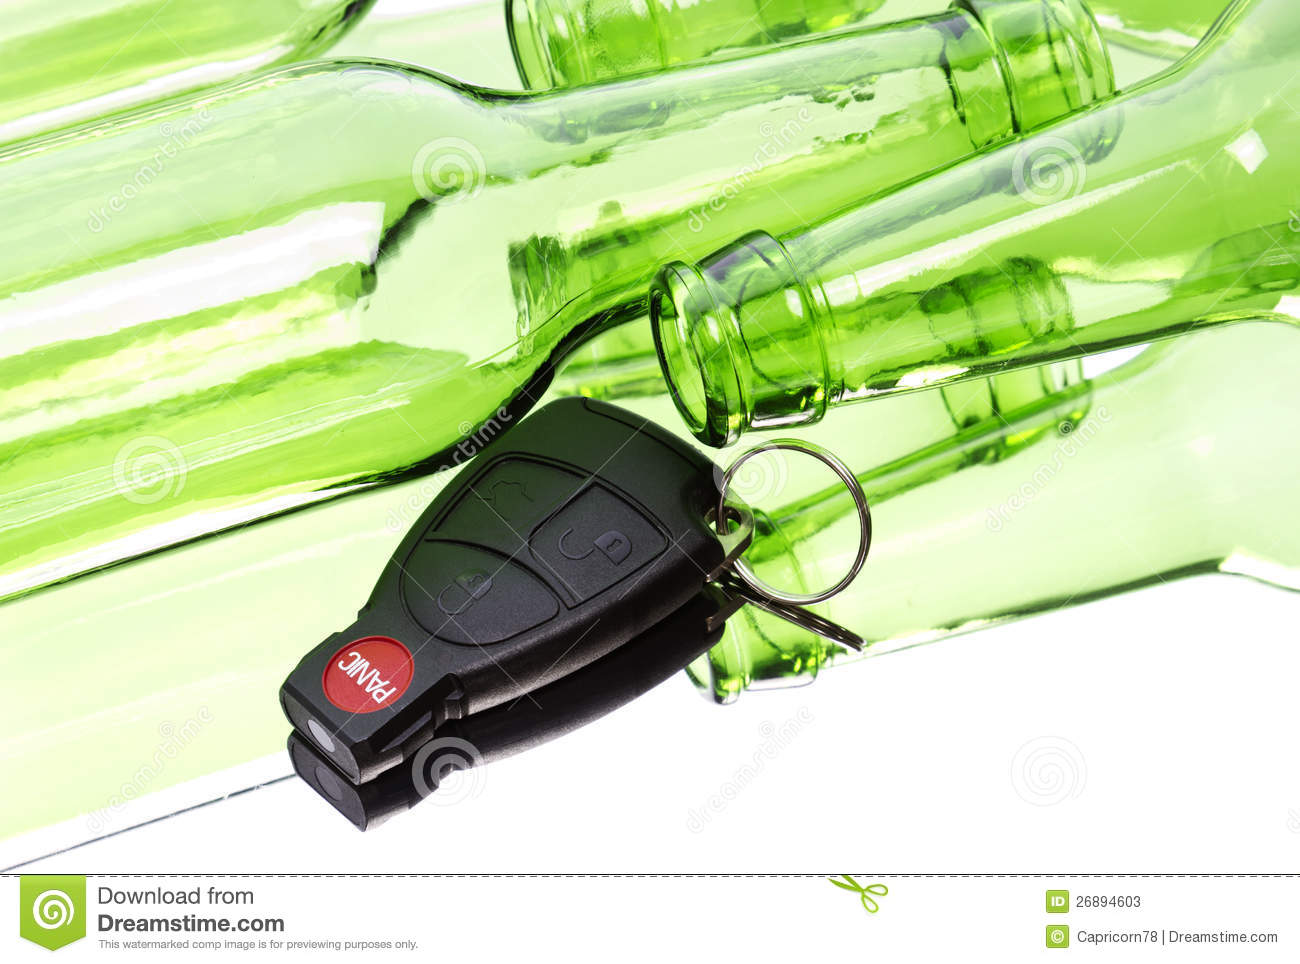 a description of the ignition interlock for drunk drivers Description the rs588g is a volunteer ignition interlock device that helps to prevent drunk driving by requiring the user to pass a breath alcohol concentration (bac) test before allowing a.